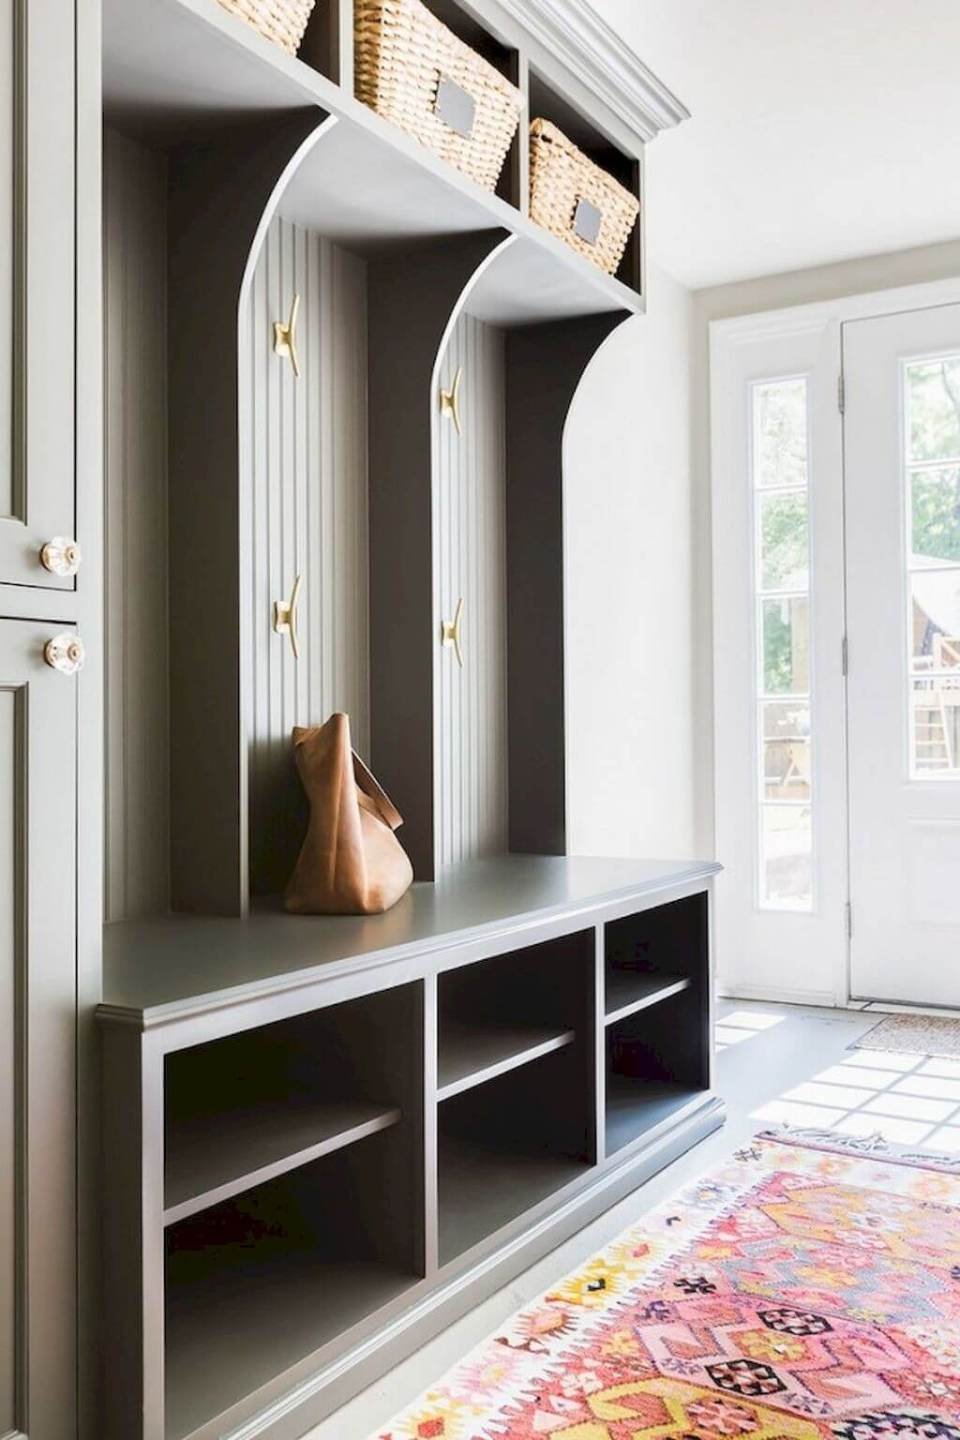 A linen closet with storage | Best Small Entryway Decor & Design Ideas | Small Mudroom Ideas | FarmFoodFamily.com